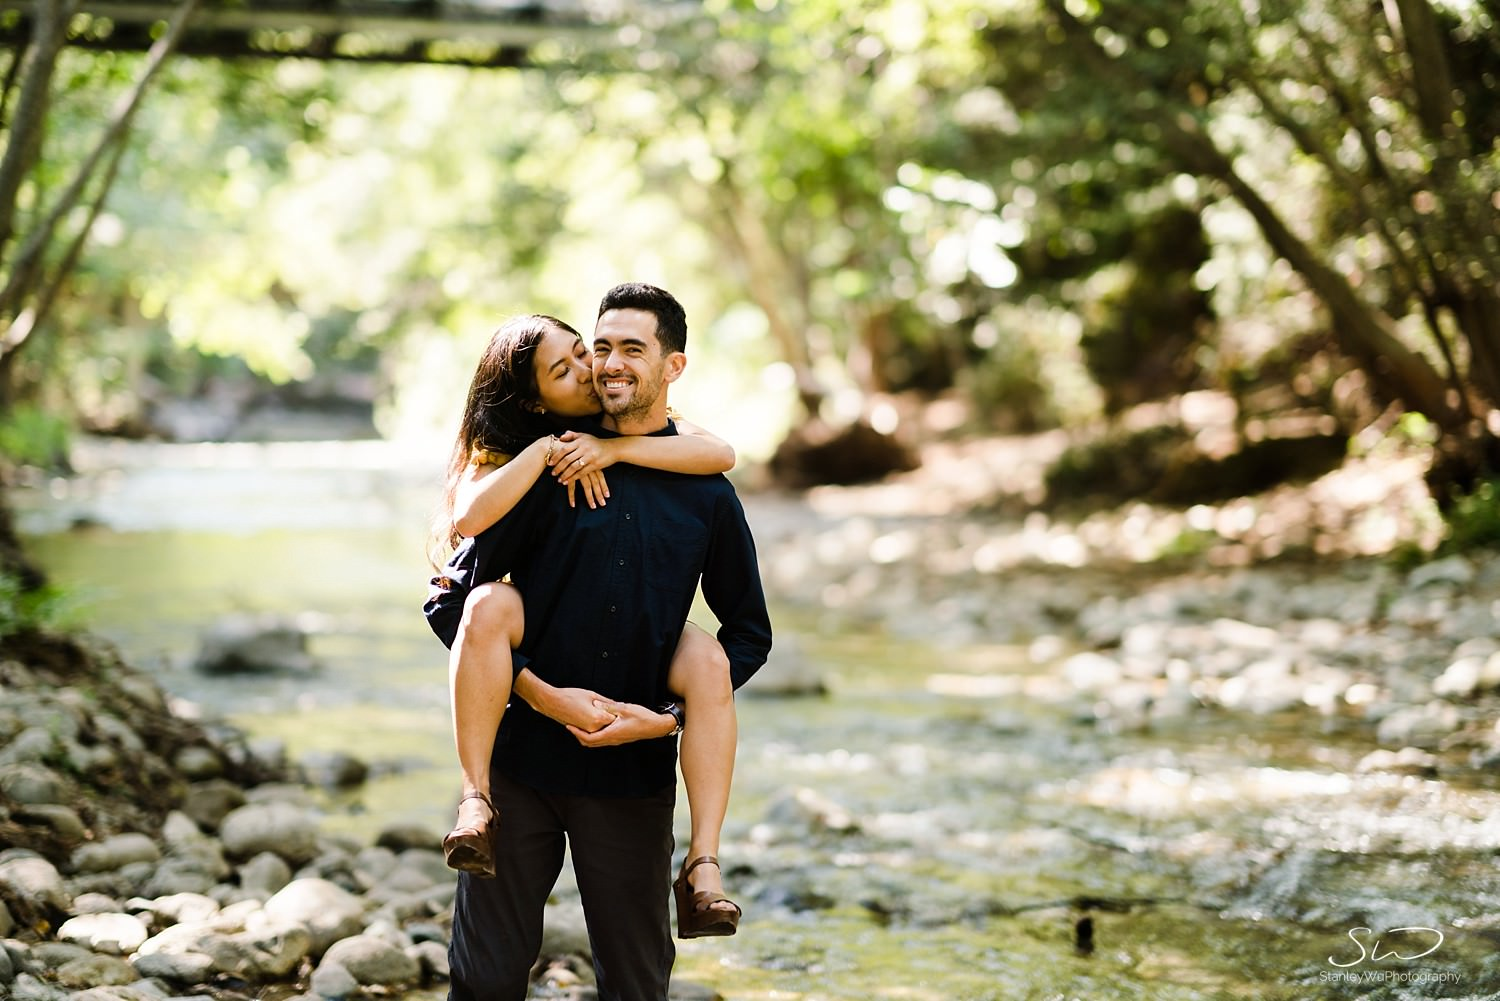 big-sur-travel-adventure-engagement-session_0014.jpg